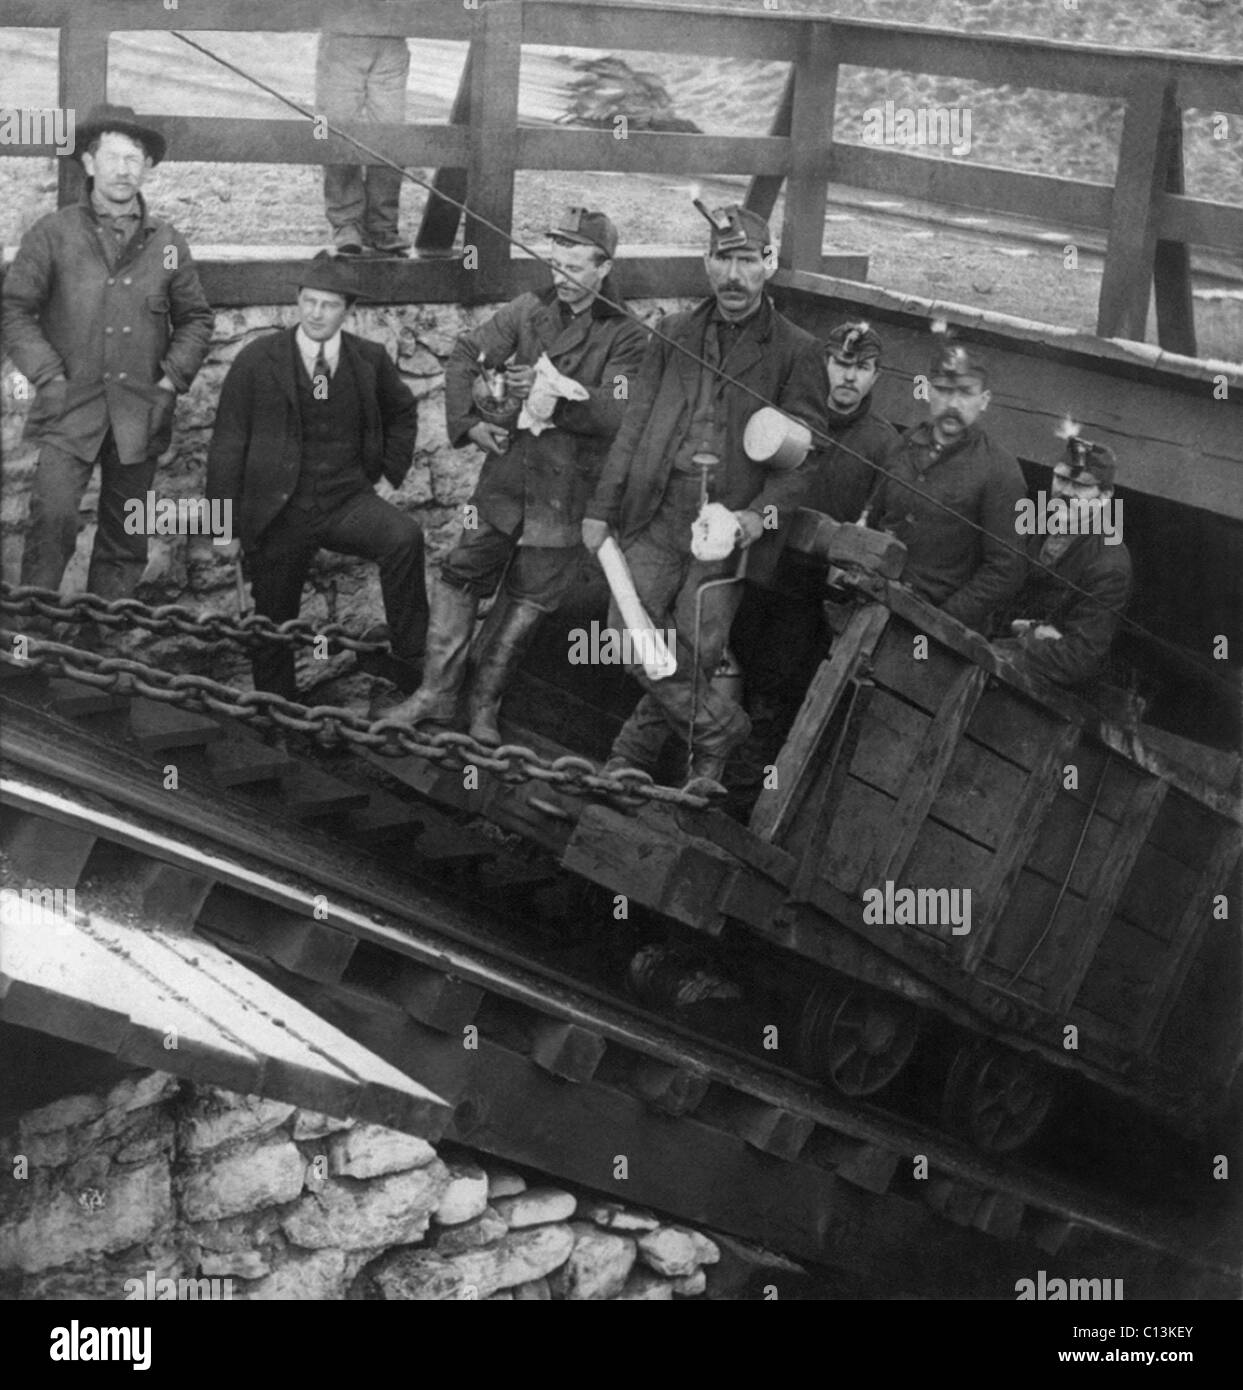 Five miners going into the Slope, descending into coal mine, Hazelton, Pennsylvania. Note the man in a suit, standing - Stock Image